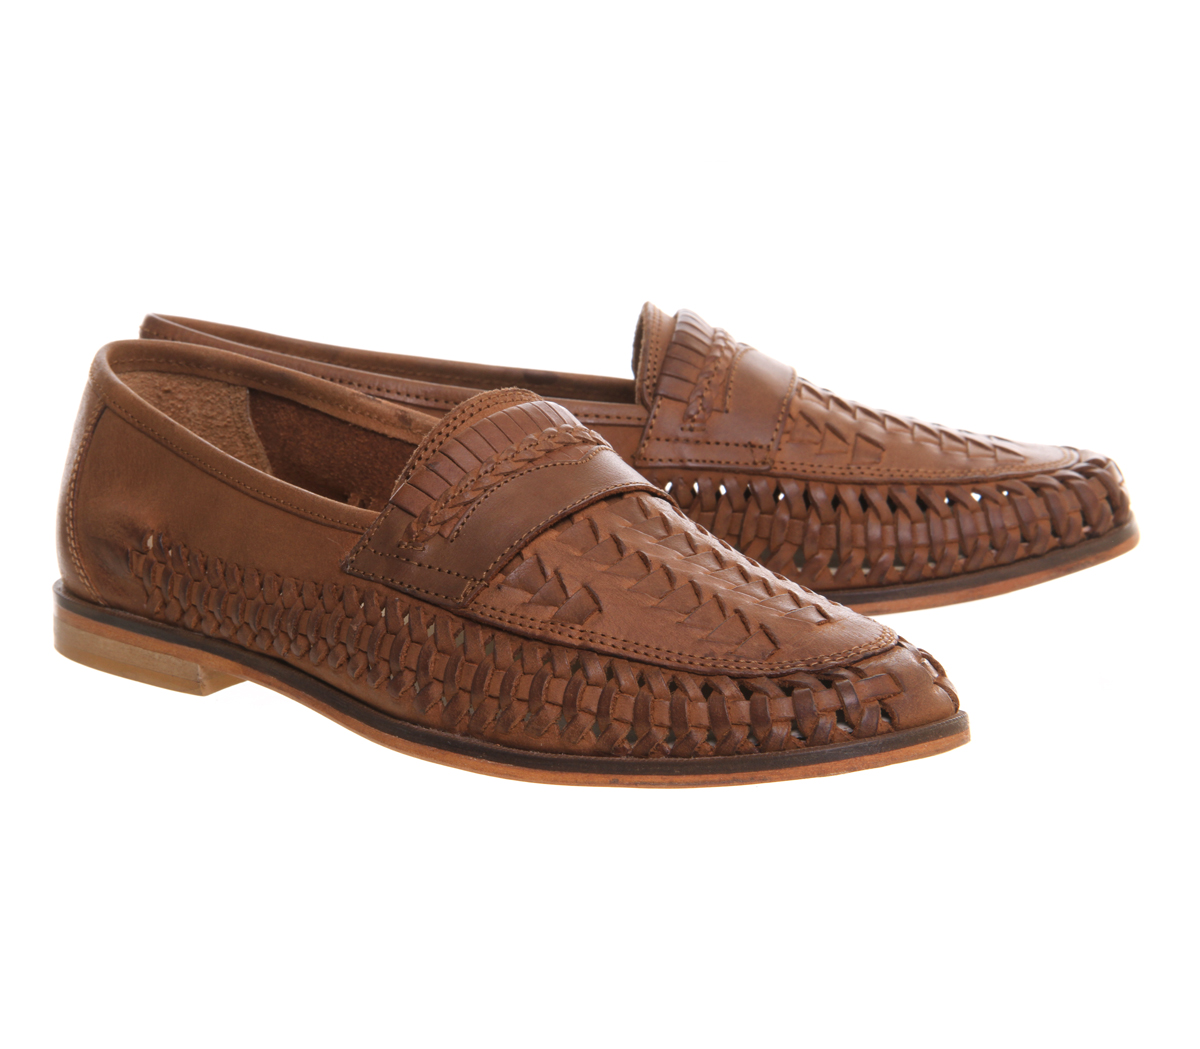 Mens Office Bow Weave Slip On Loafers Tan Washed Leather Casual ... 5d00a959153